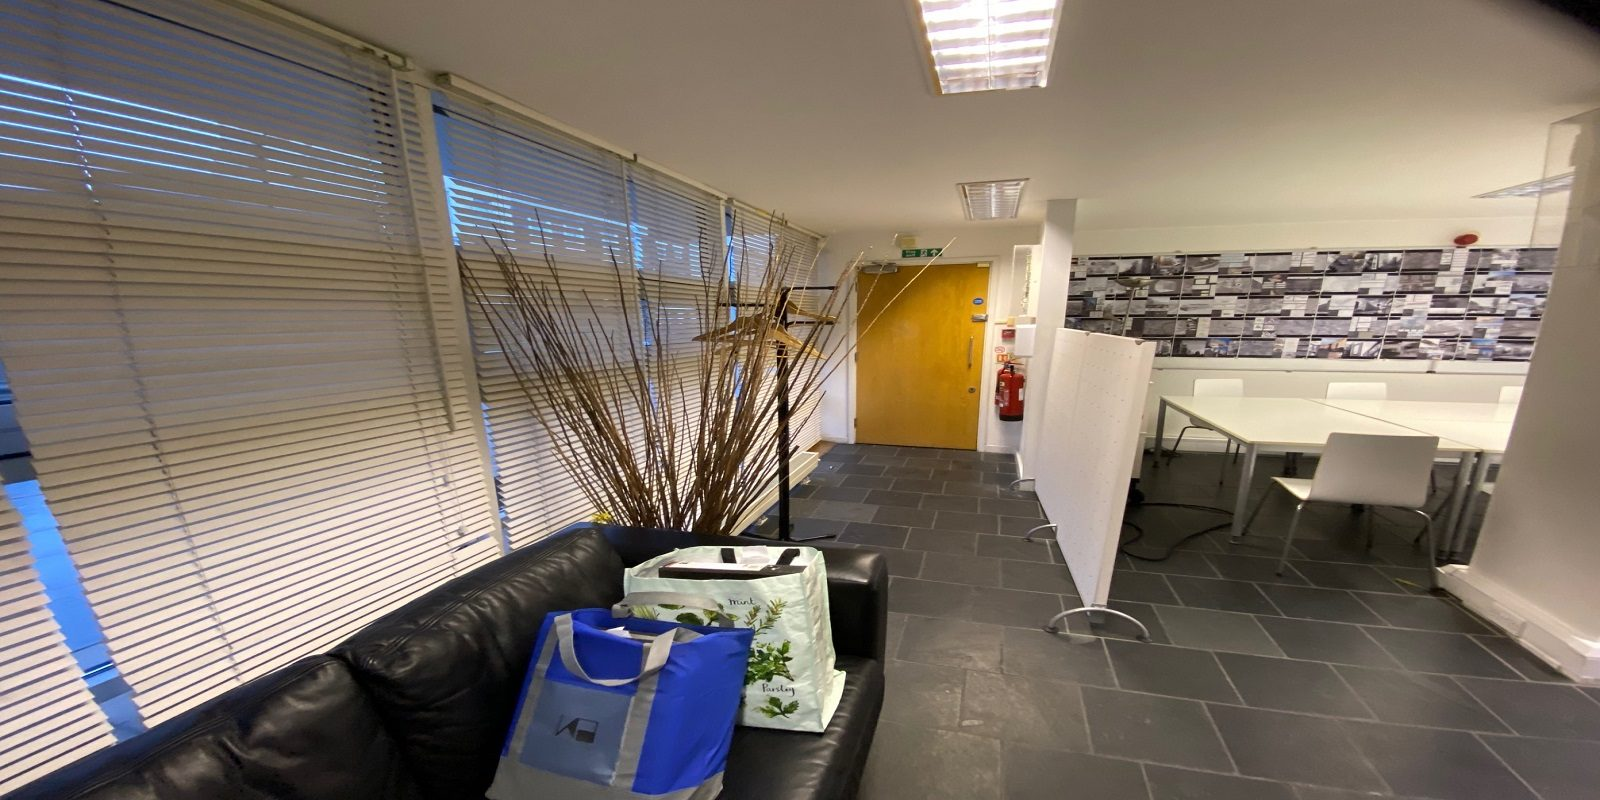 STUDIO / OFFICES TO LET IN CAMDEN TOWN